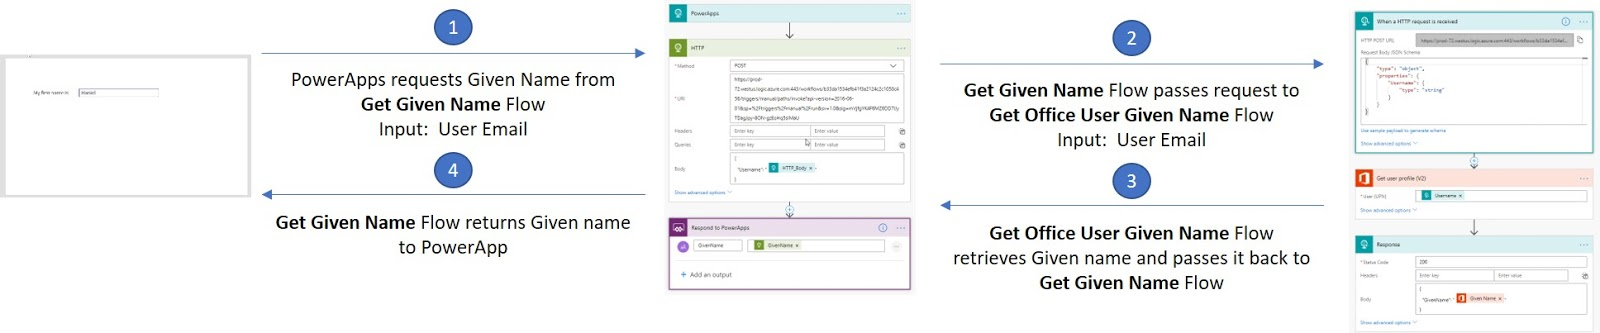 Bypassing Connector Authentication in PowerApps ~ Agile